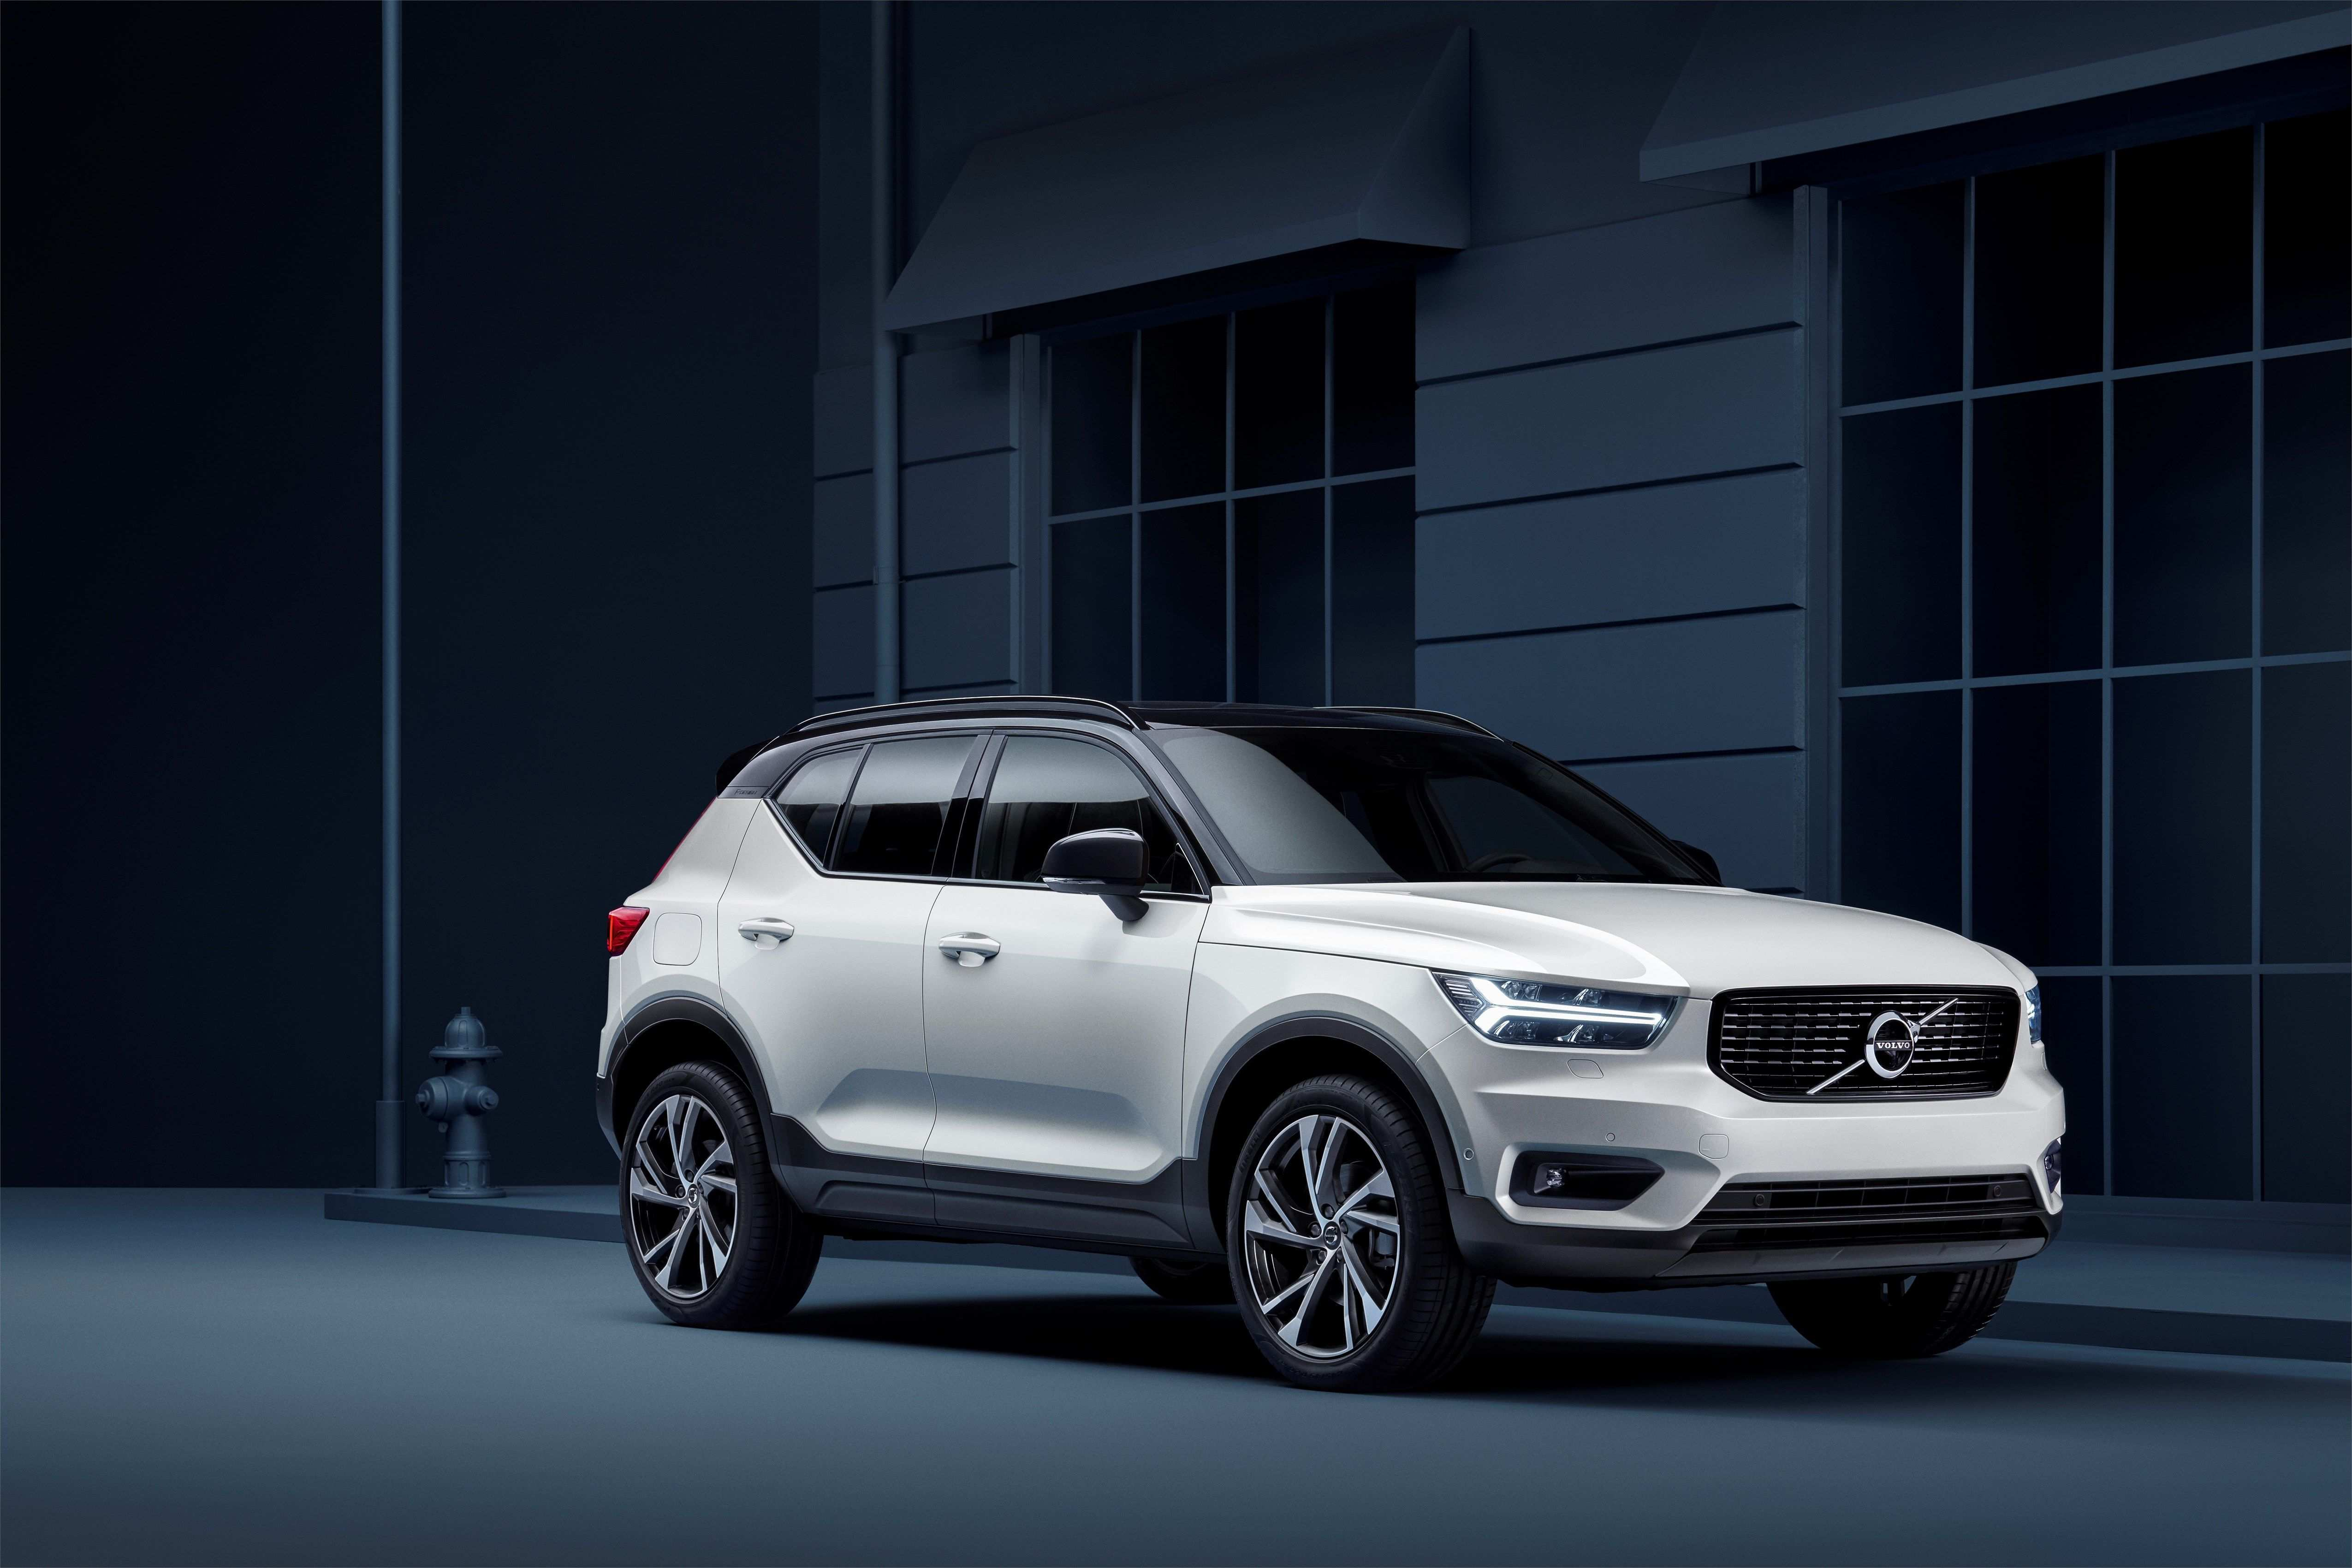 69 Concept of Volvo Overseas Delivery New Concept 2020 First Drive for Volvo Overseas Delivery New Concept 2020